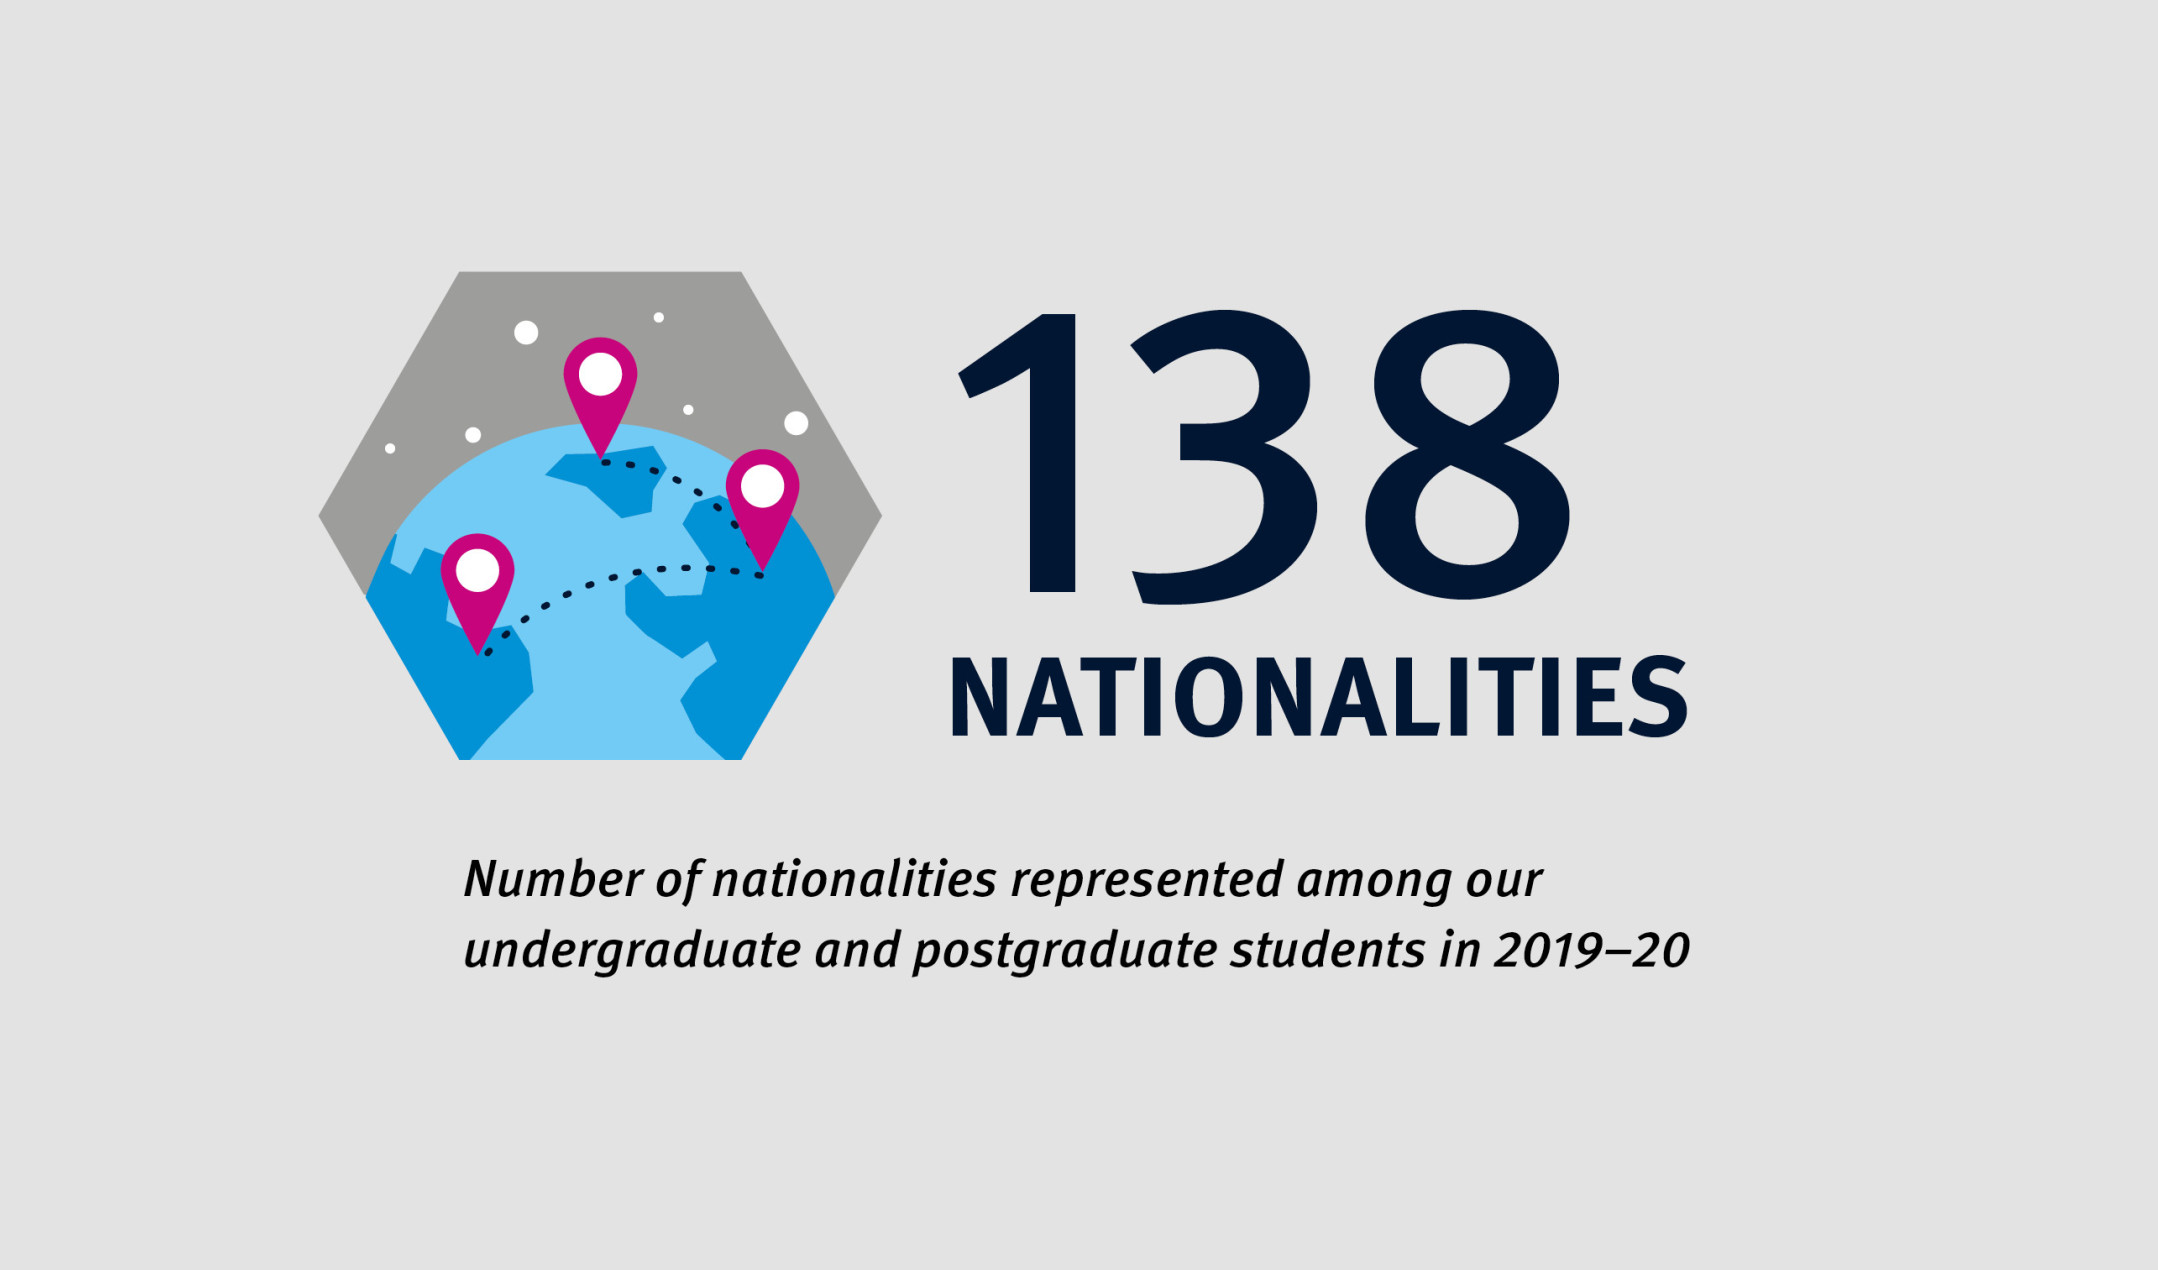 138 nationalities